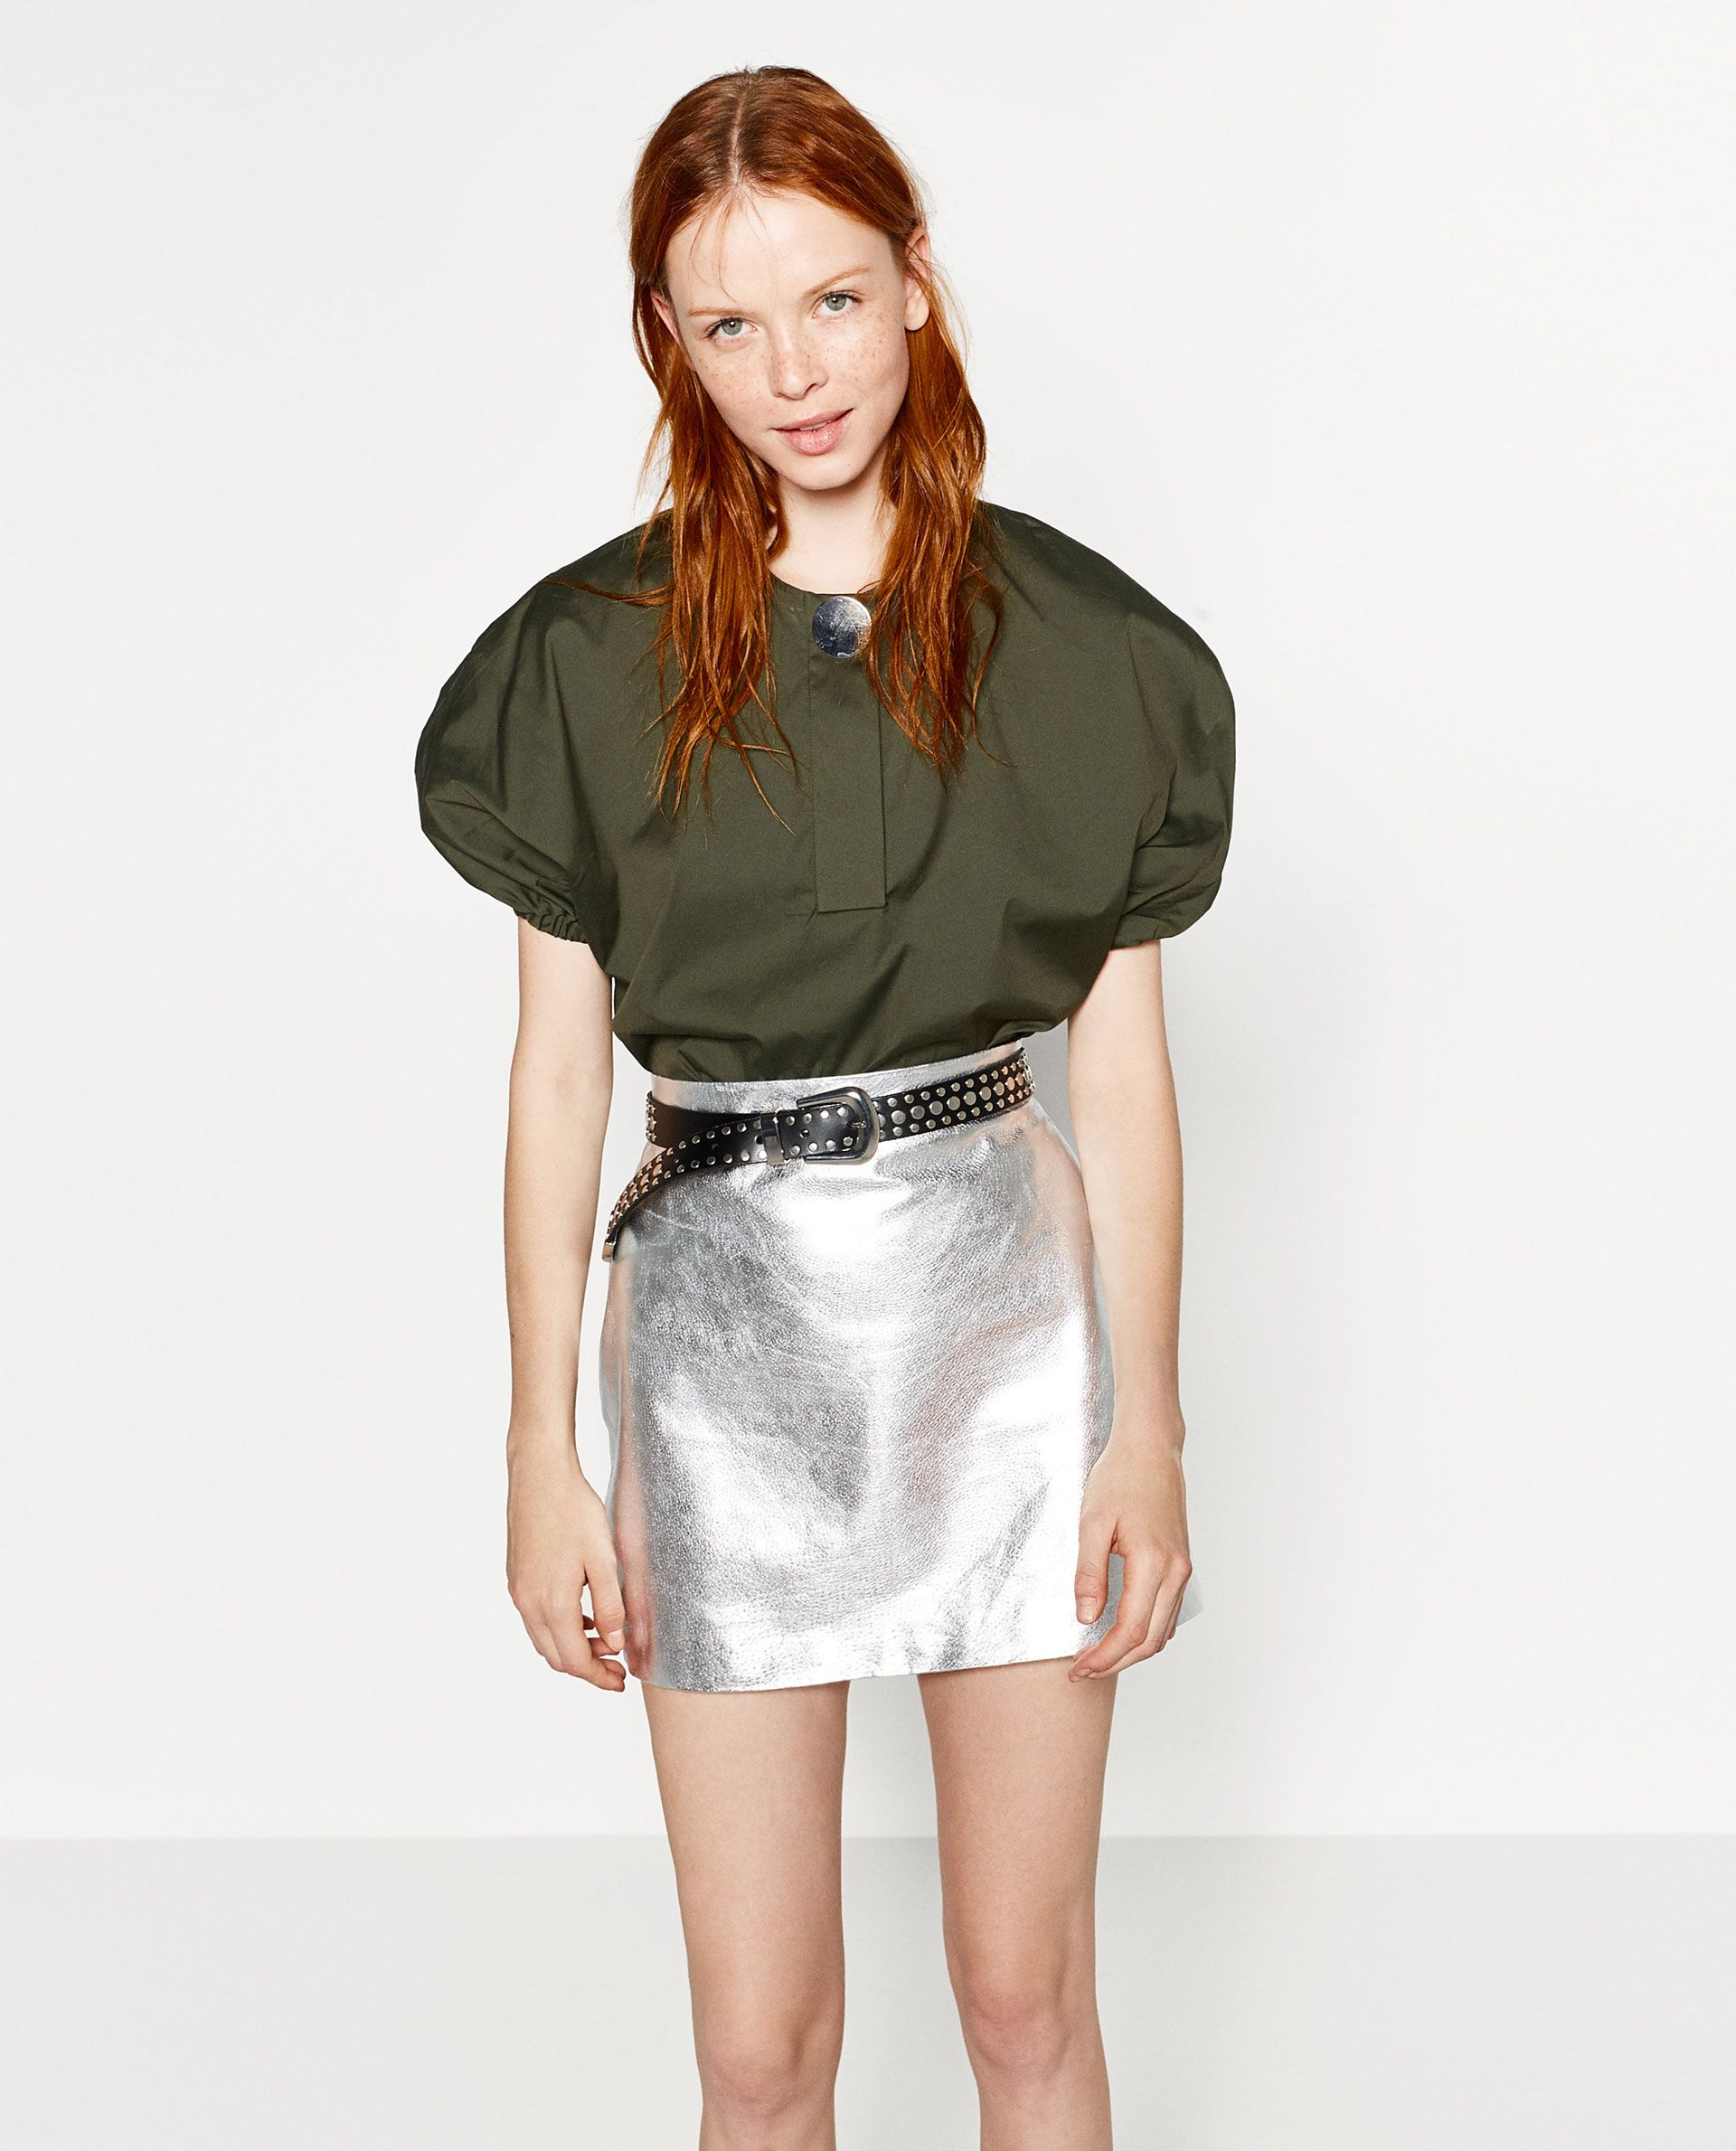 fb36cf225372 Zara Netherlands, Zara Women, White Leather Skirt, Metallic Leather, Silver  Skirt,